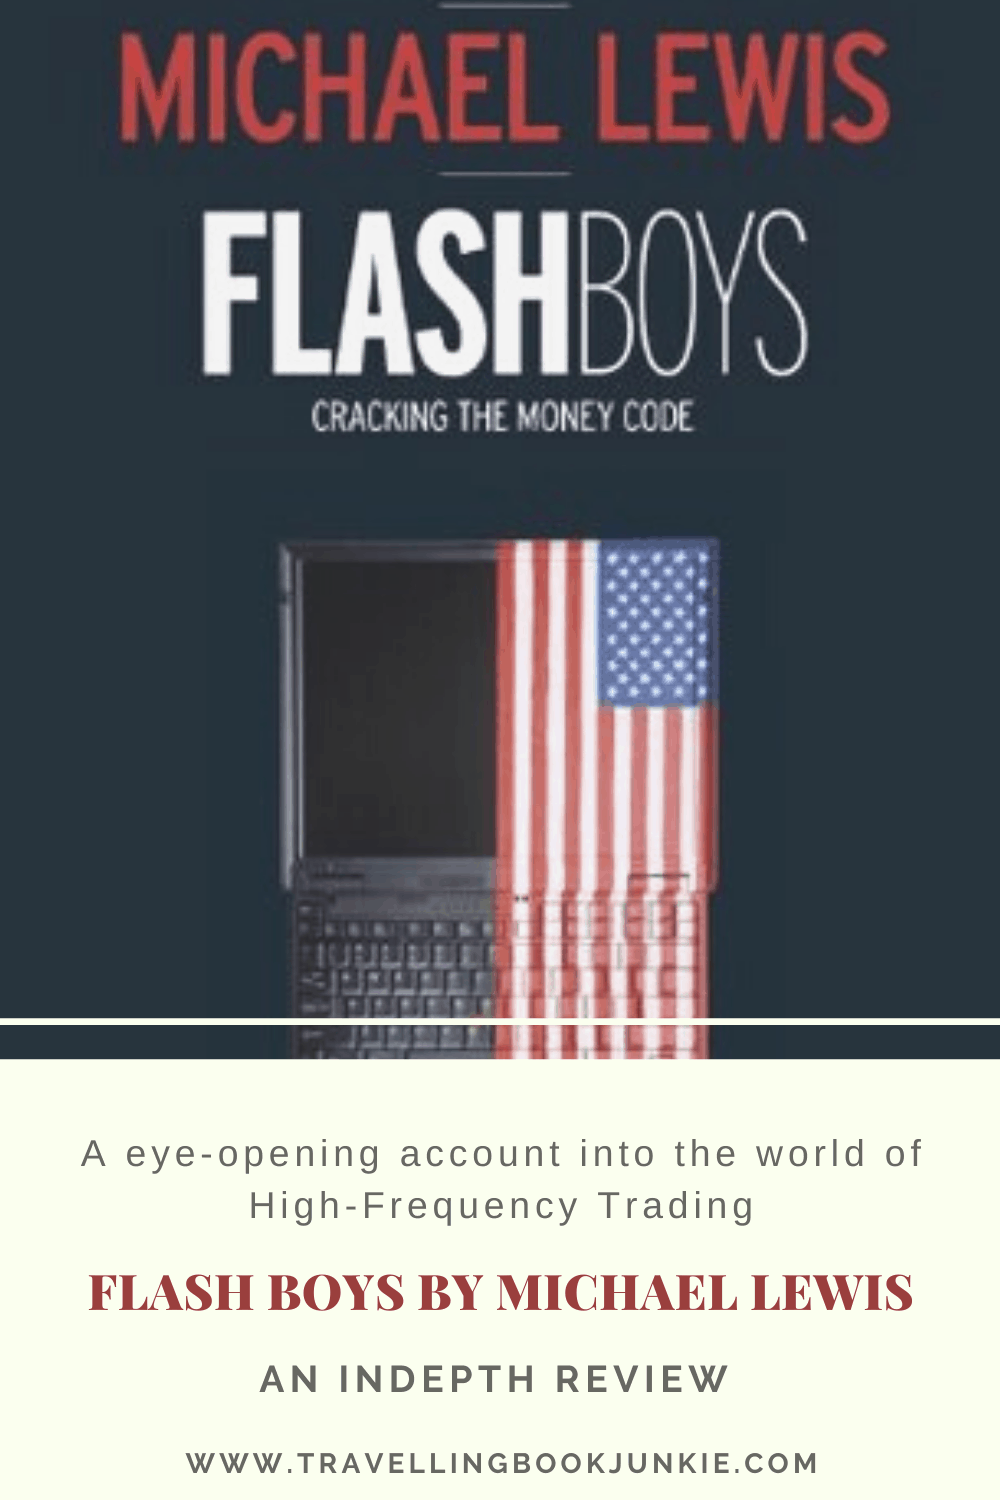 Flash Boys by Michael Lewis is an eye-opening account of high-frequency trading in the US. This book will make you question your financial advisors. Read the full review via @tbookjunkie